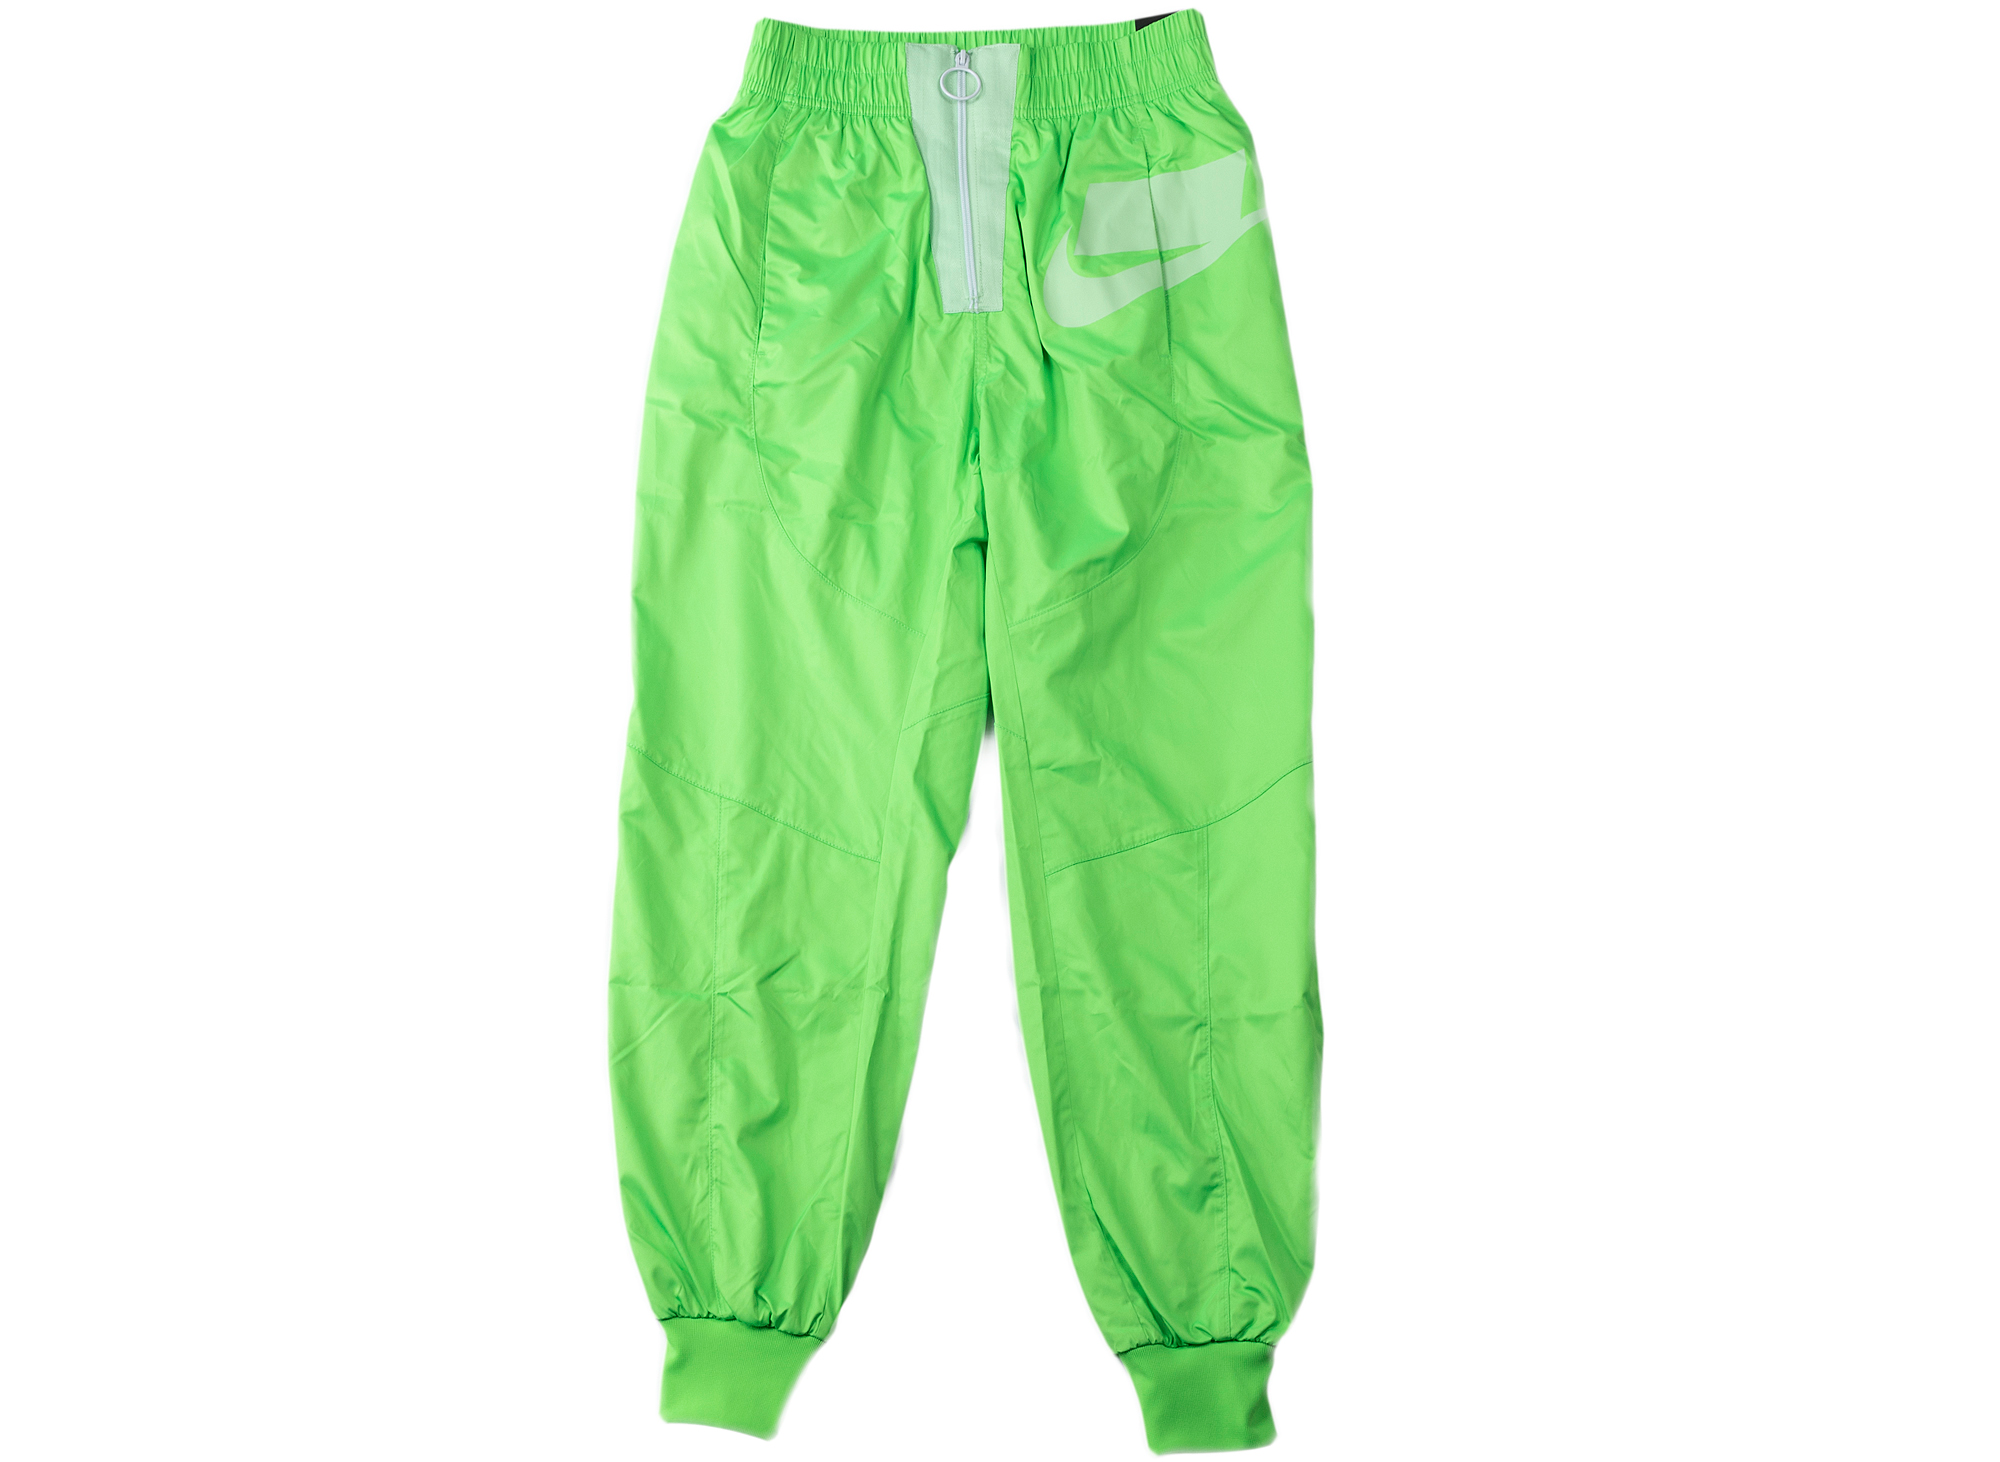 Women's Nike Sportswear NSW Woven Pants in Green